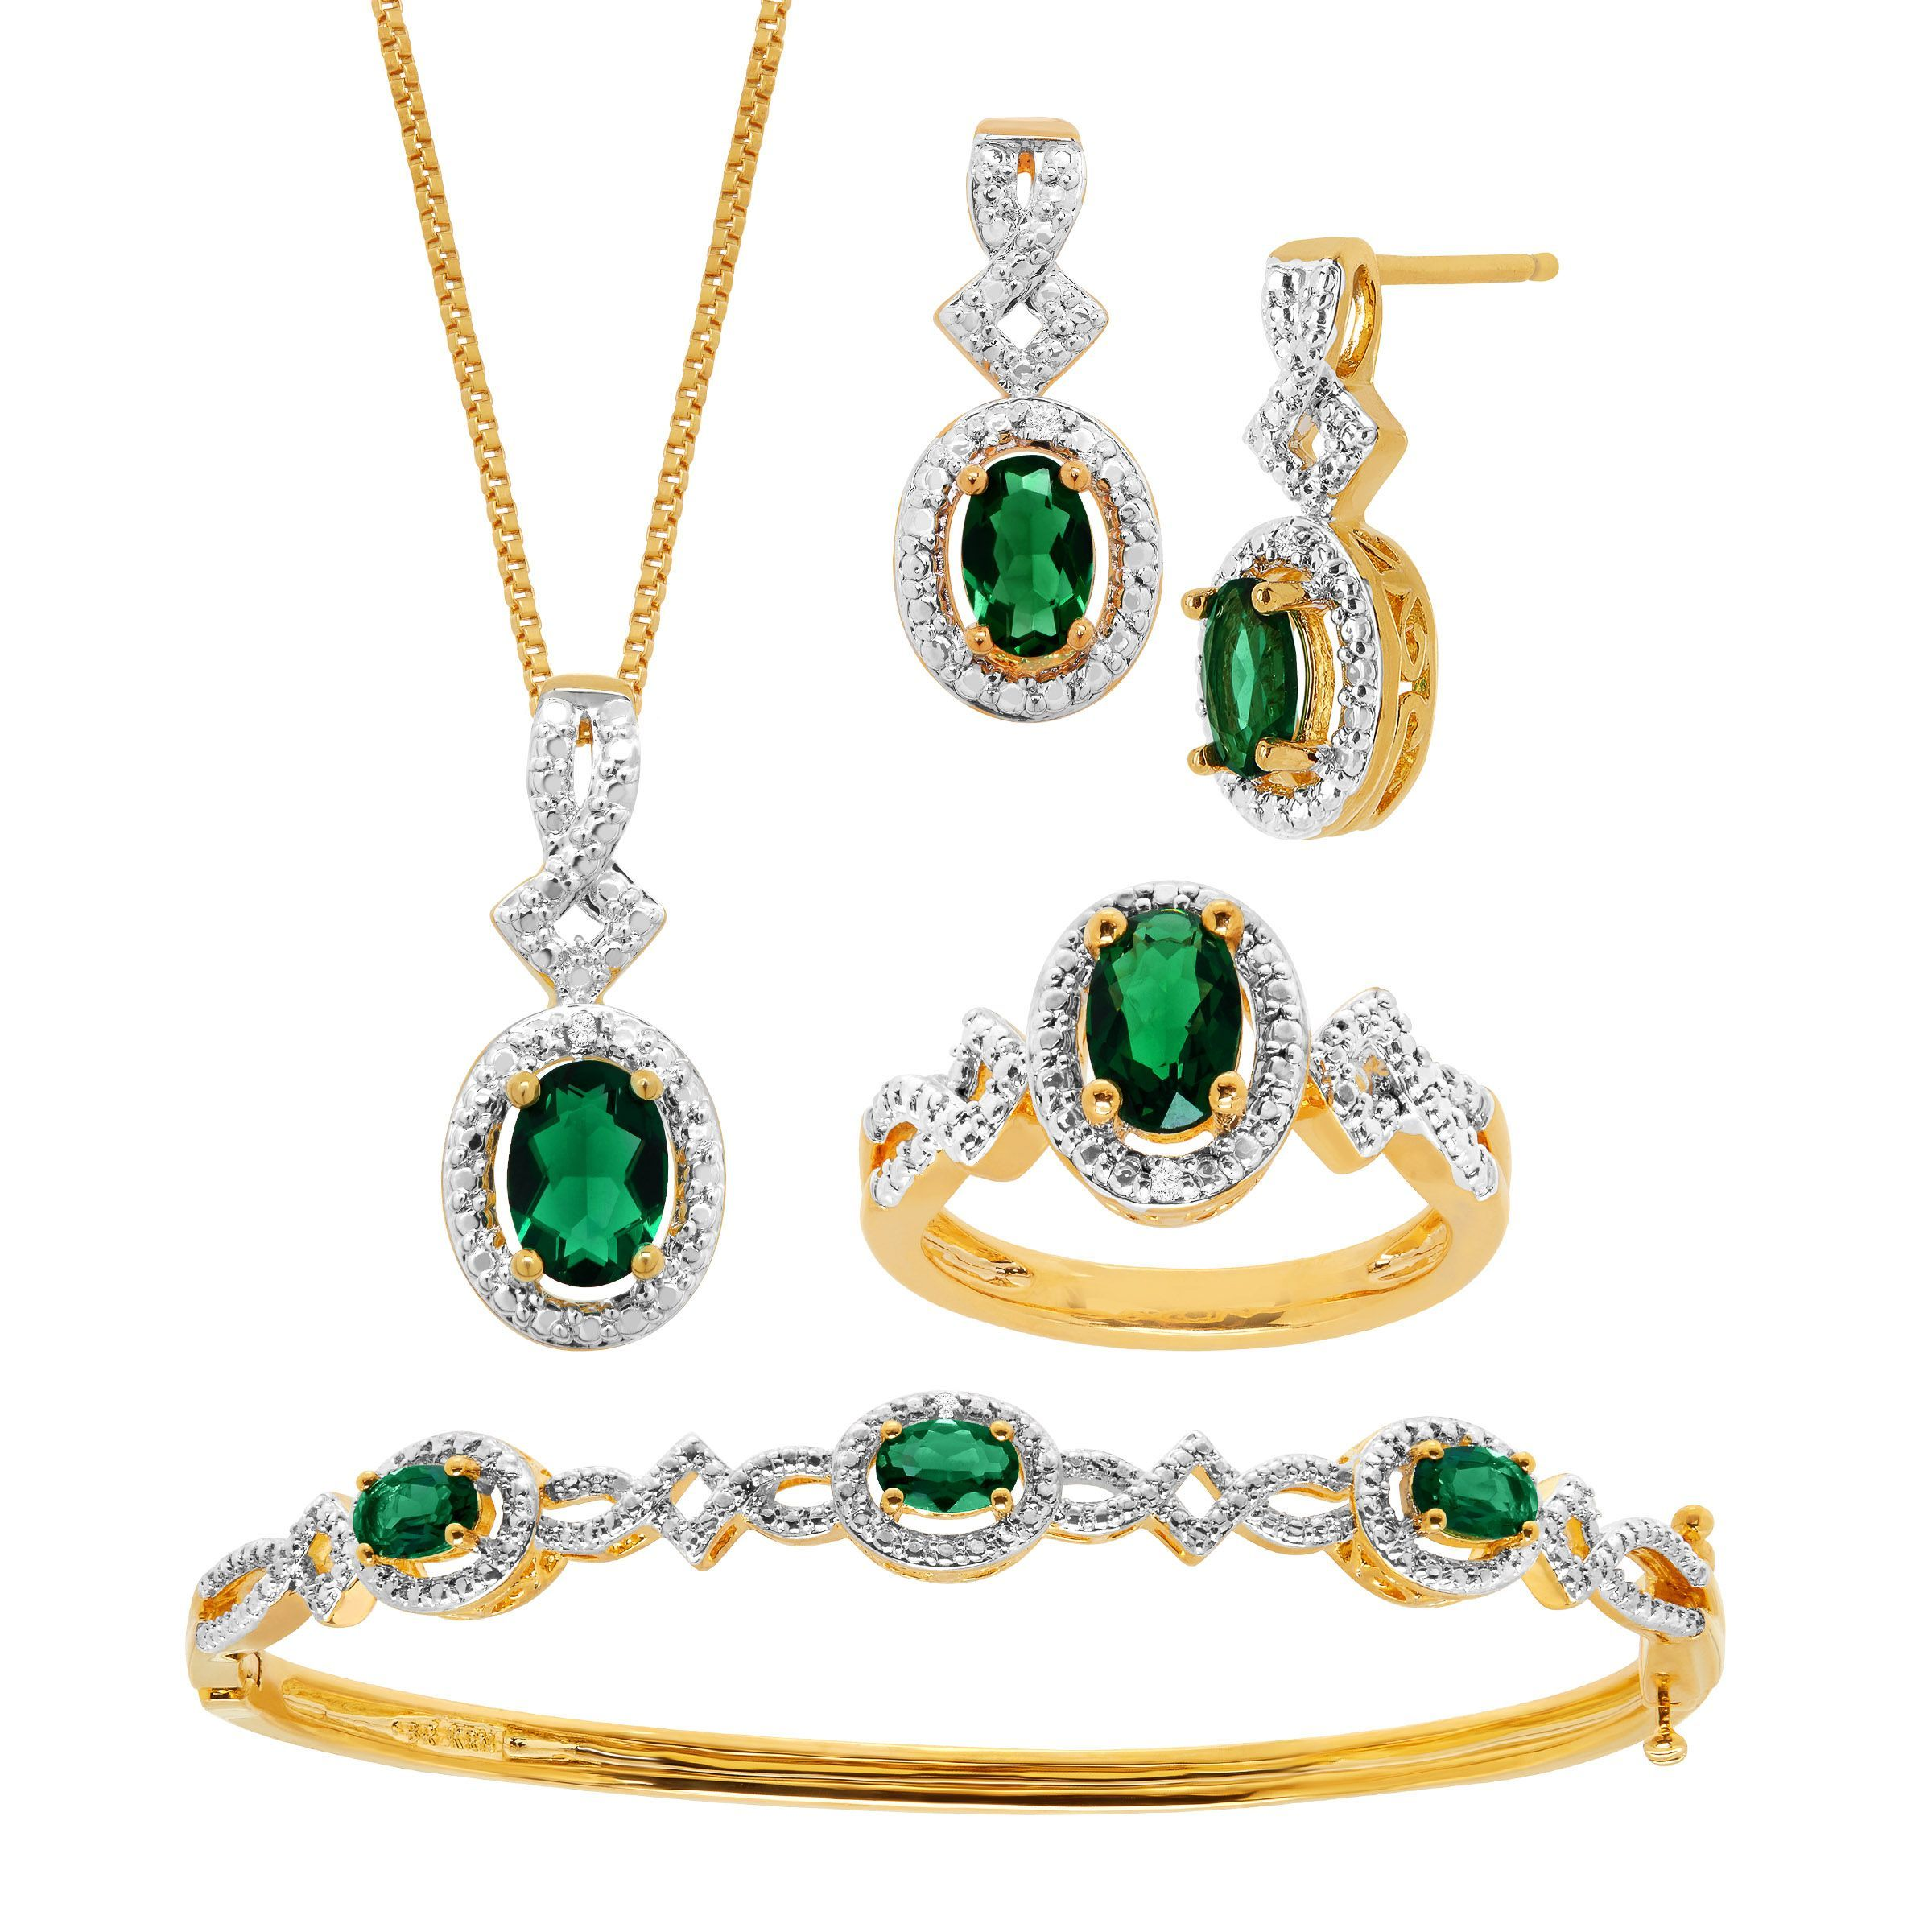 4 ct created emerald 4 piece jewelry set with diamonds in. Black Bedroom Furniture Sets. Home Design Ideas